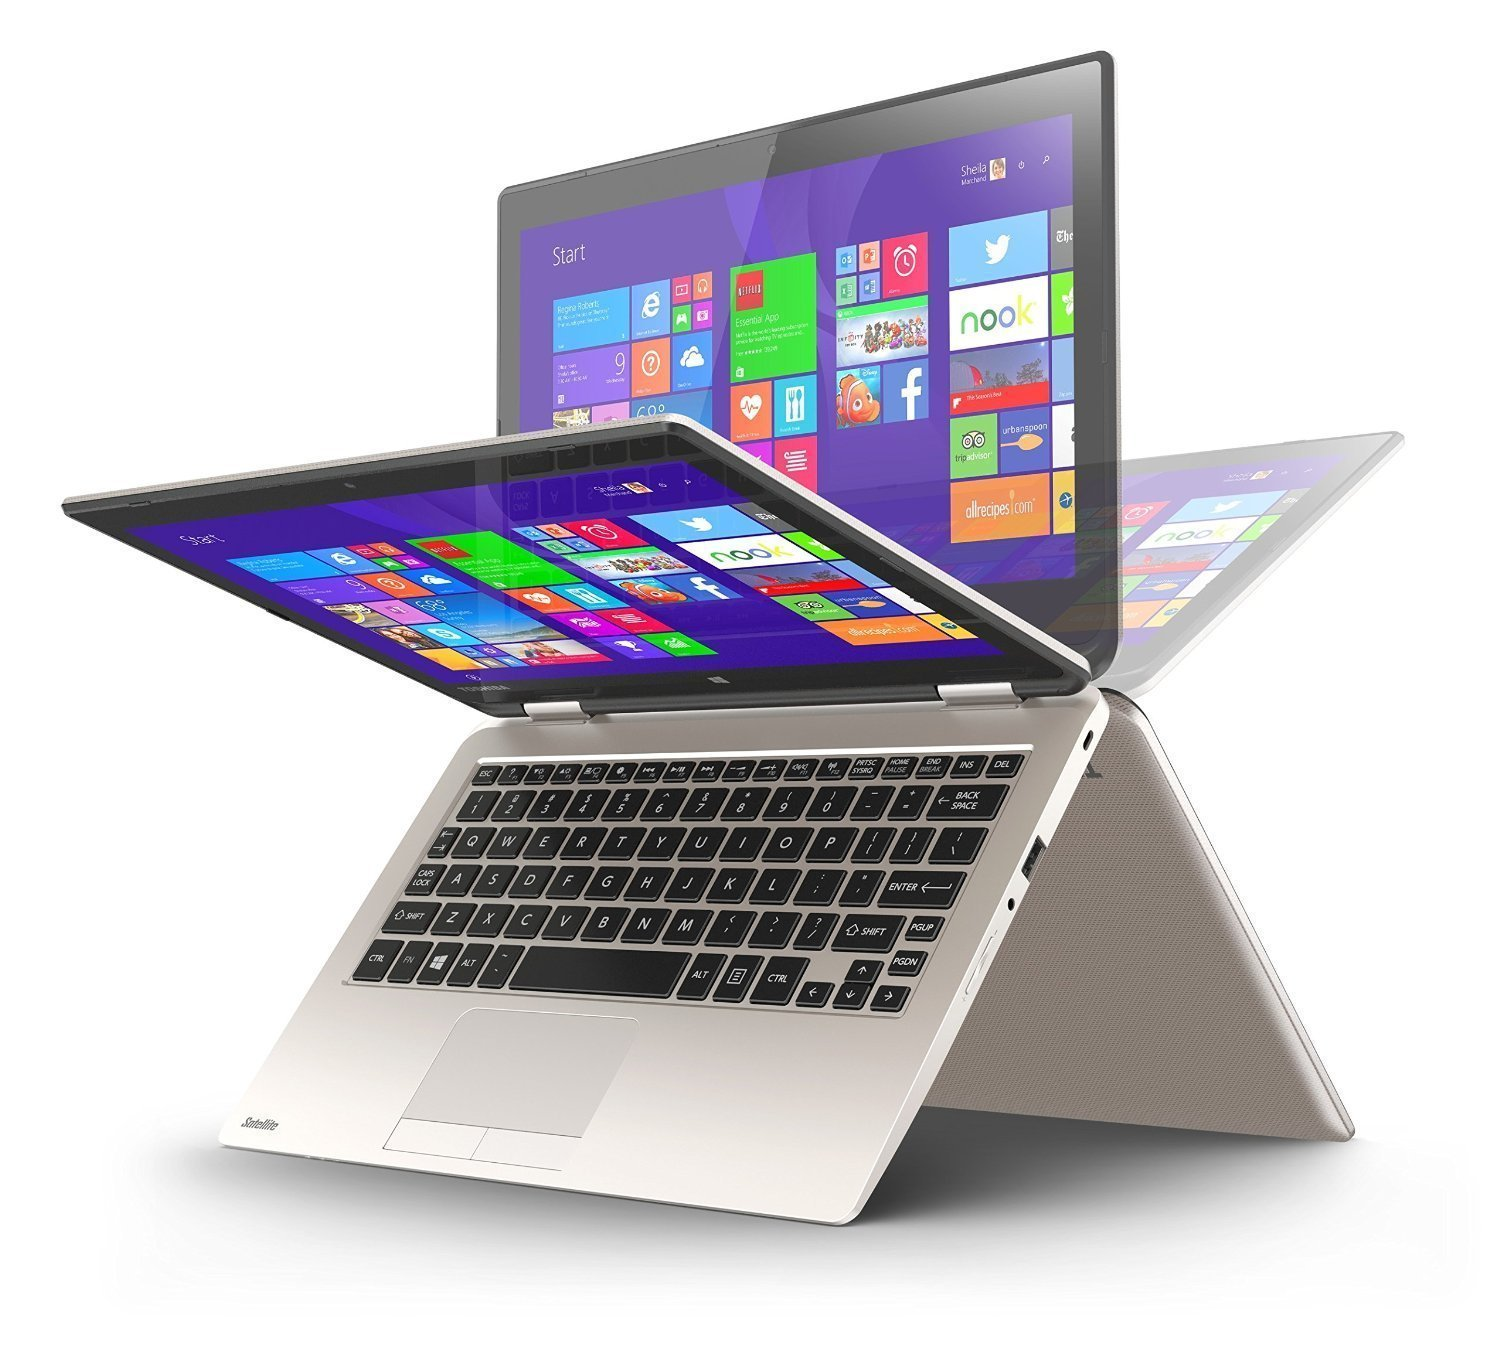 ноутбук Toshiba L50 AT Radius 2-in-1 11.6